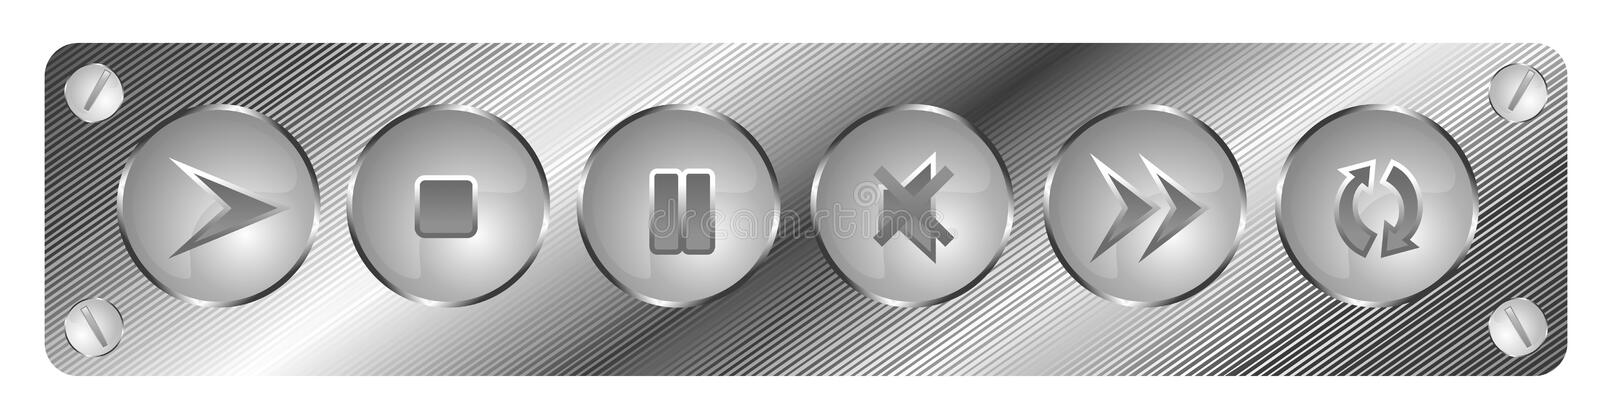 Metal buttons royalty free stock images